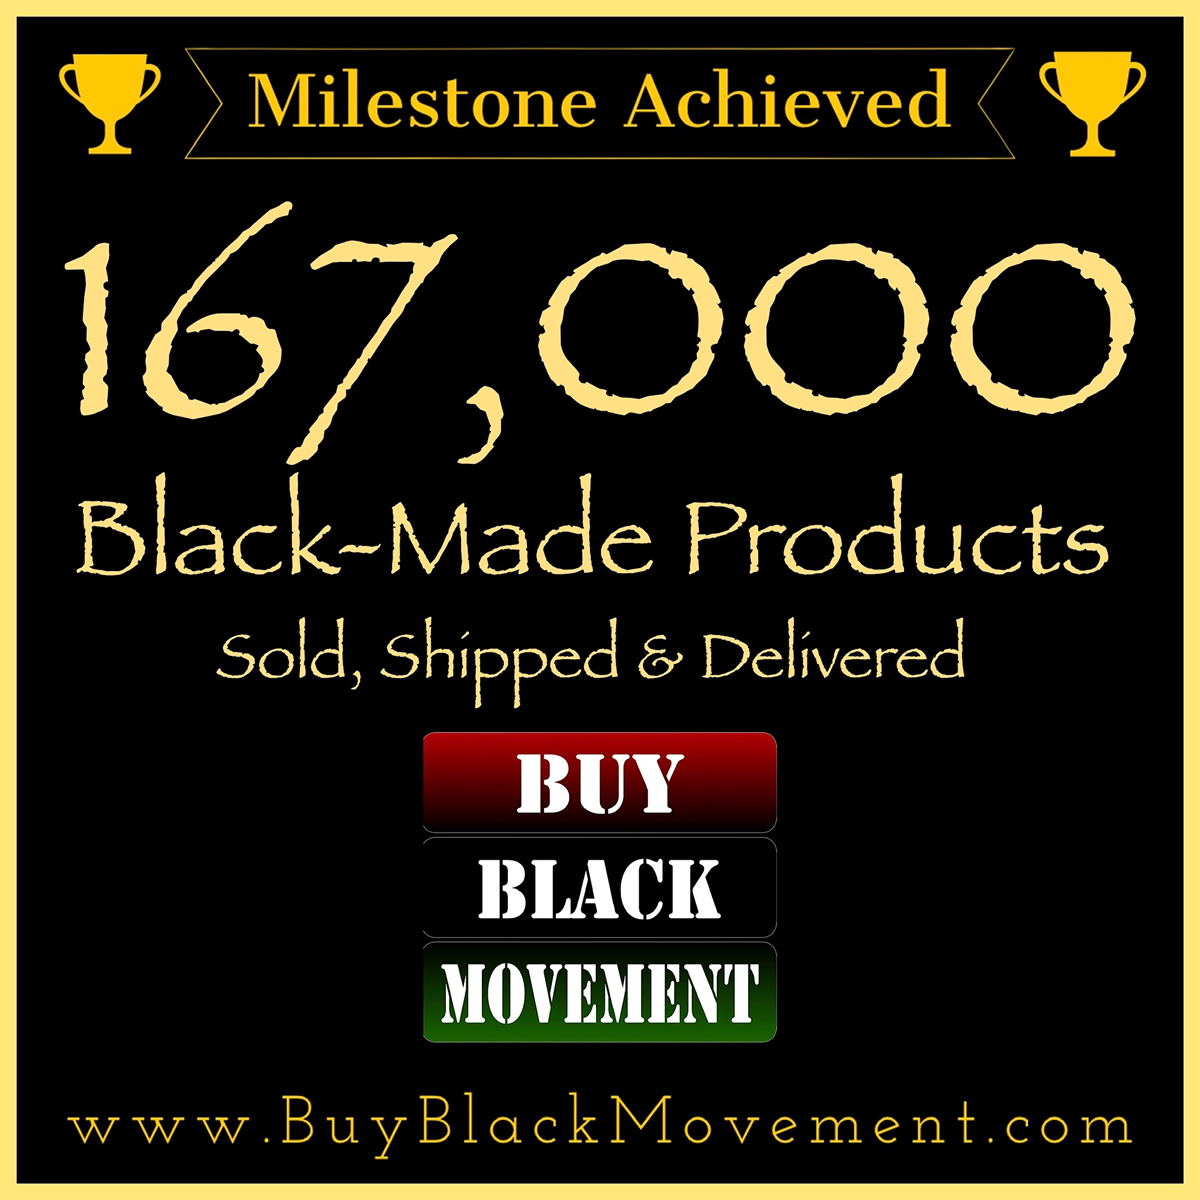 167,000 Products Sold